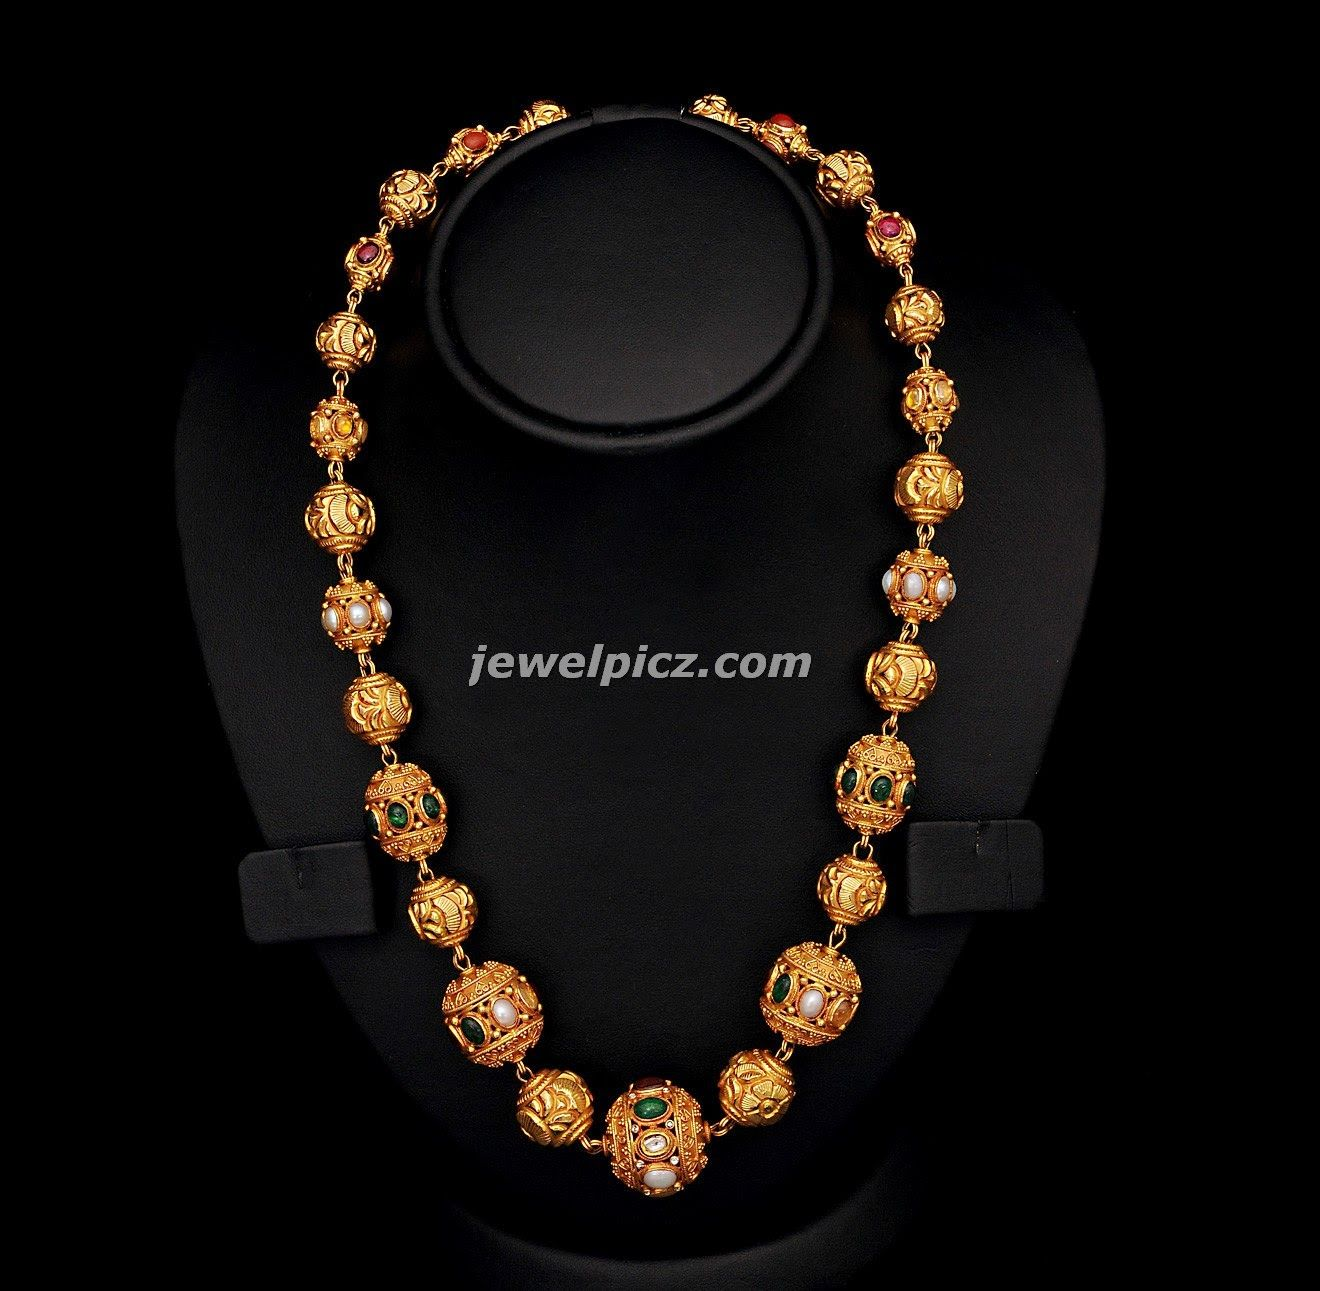 Latest Indian Jewellery Designs 2015: Latest Indian Jewellery Designs